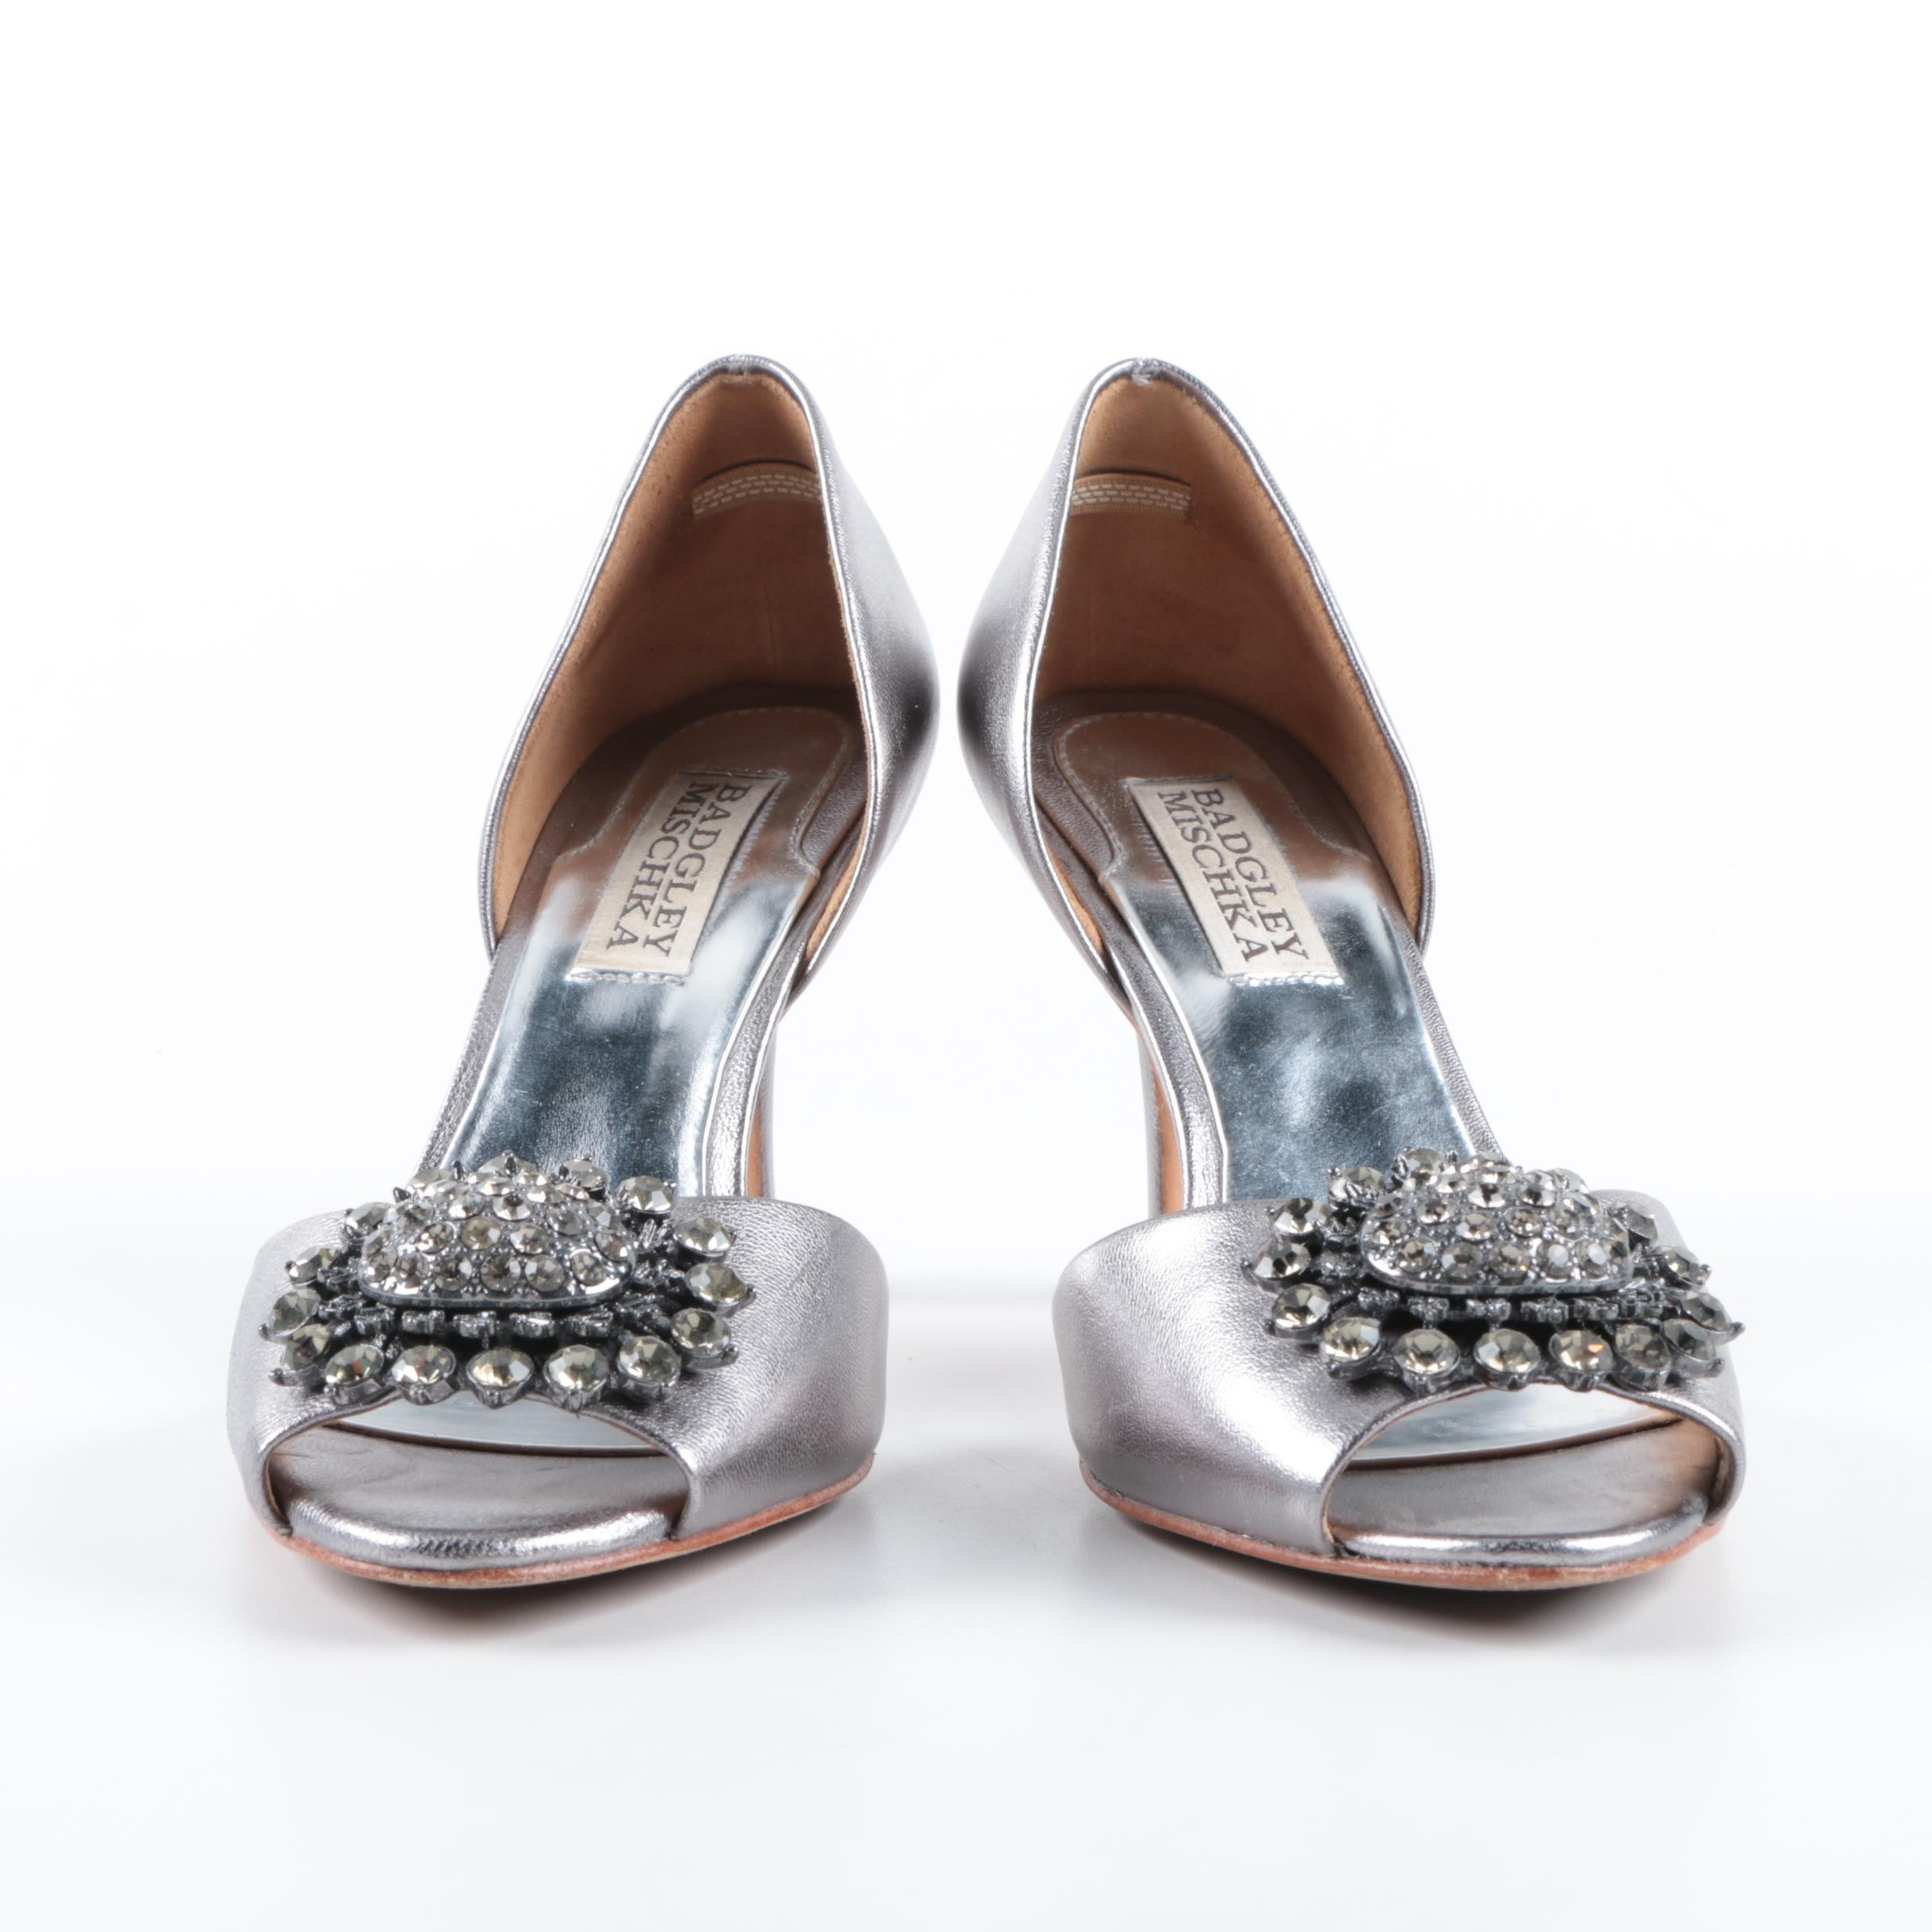 Badgley Mischka Leather Rhinestone Heels